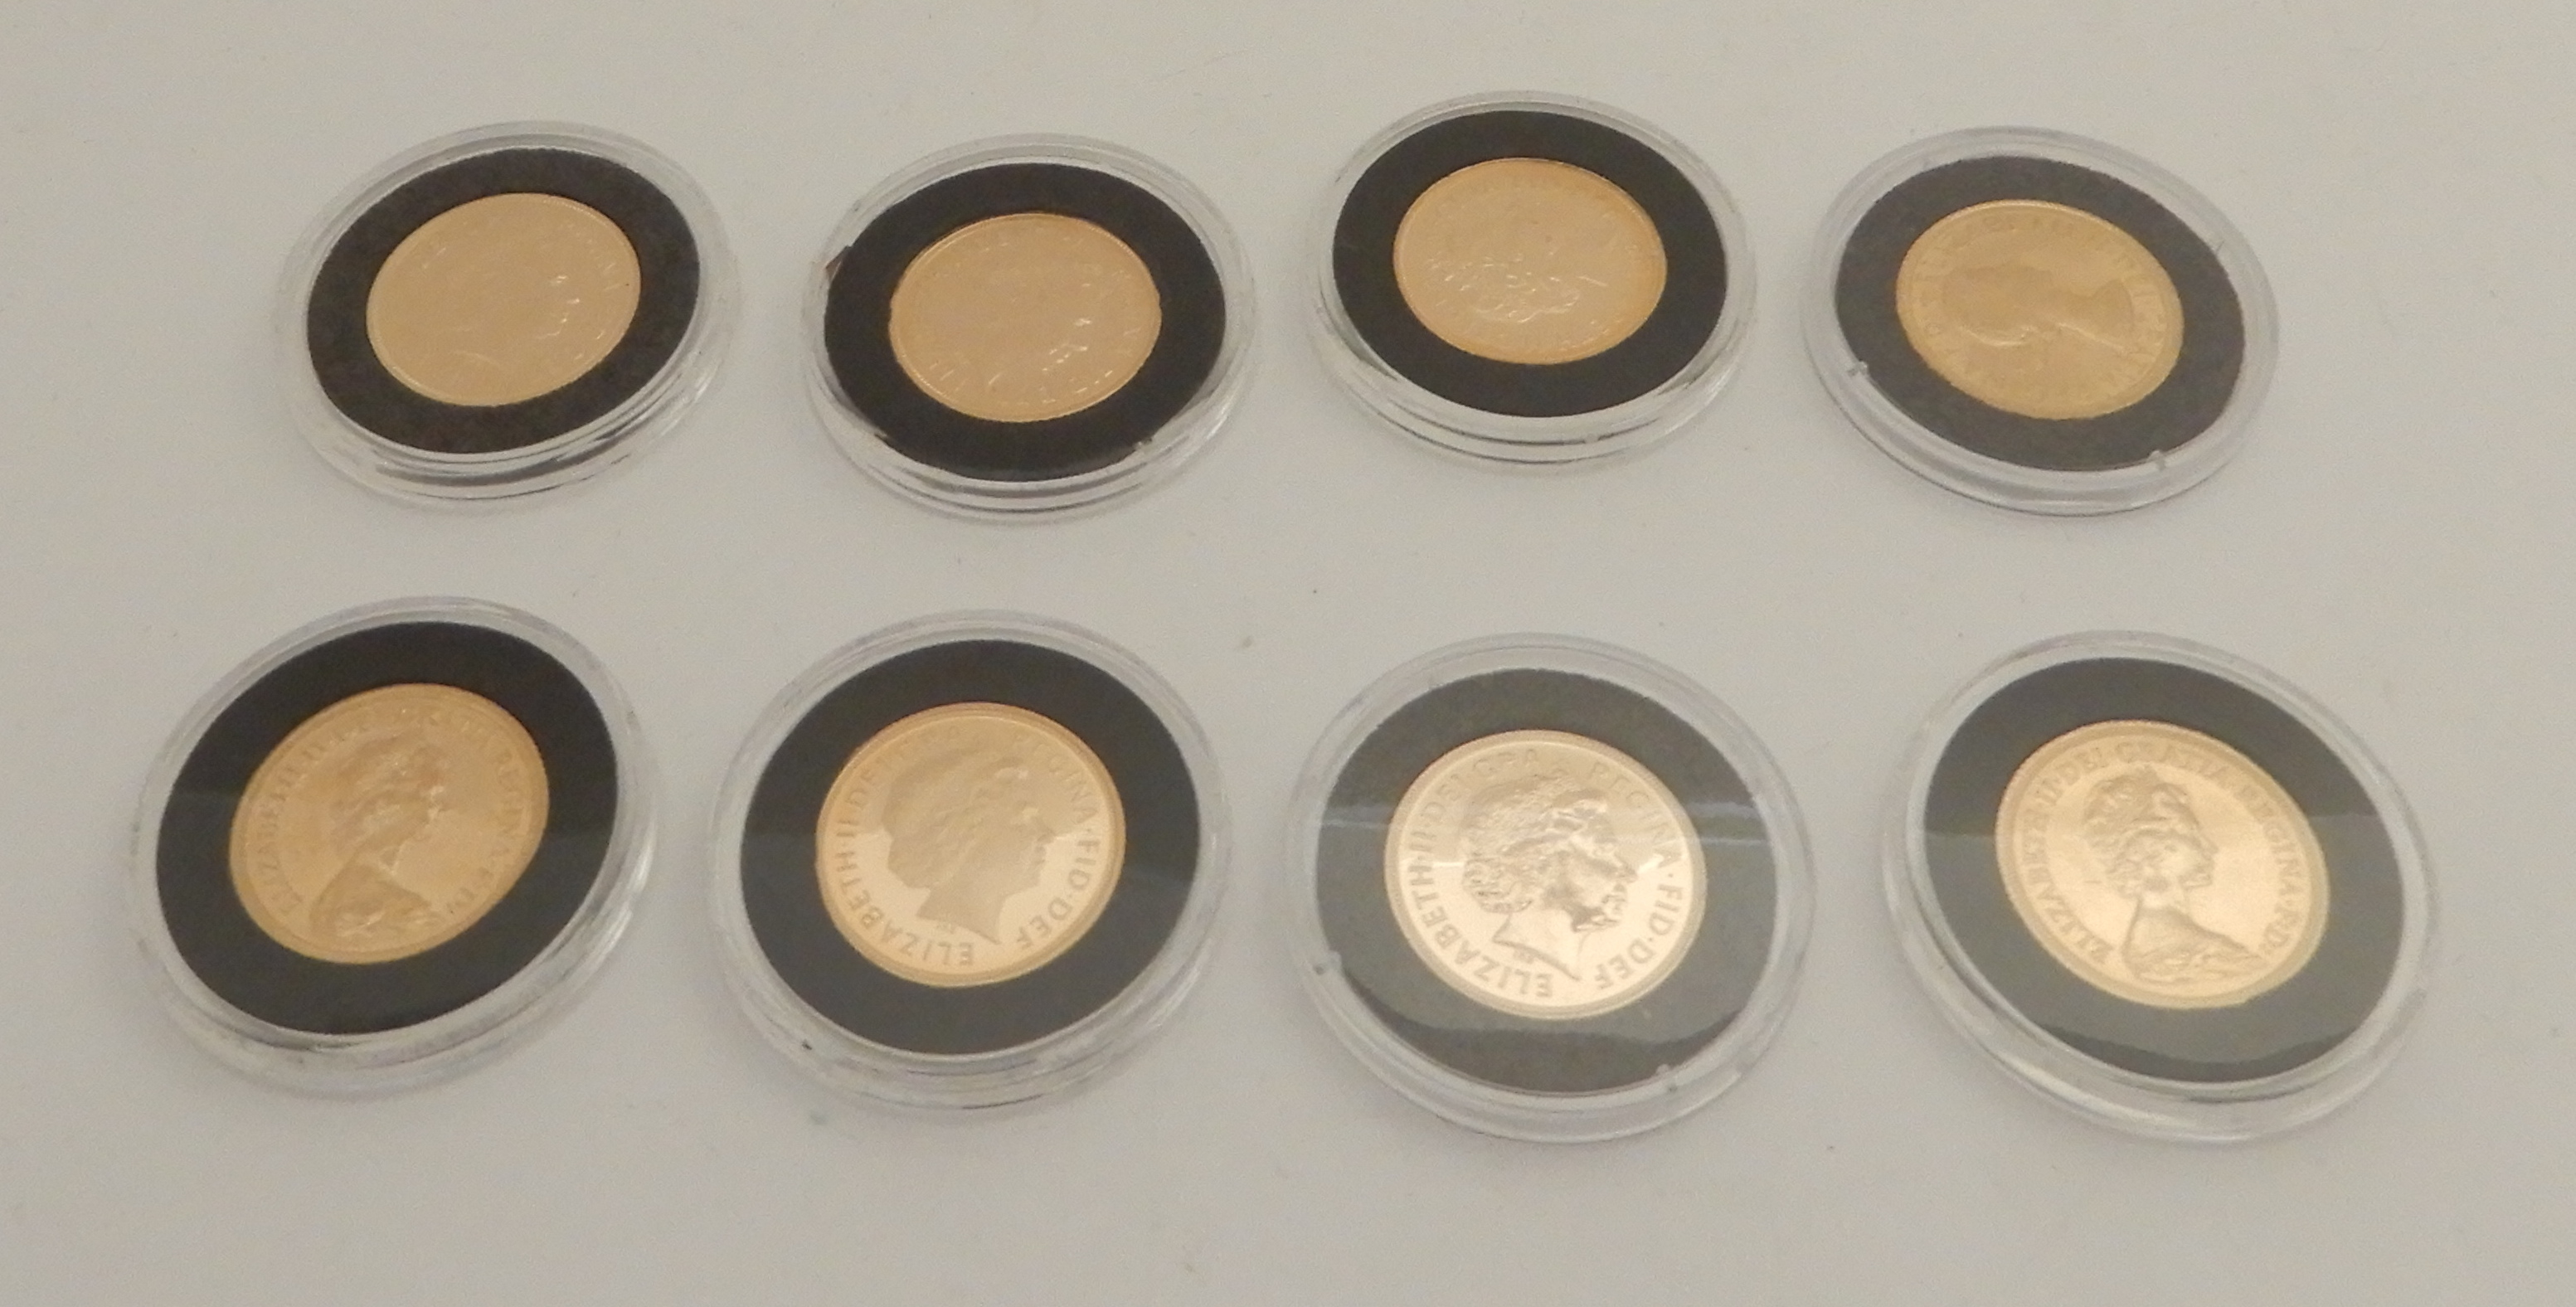 Lot 197 - EIGHT QUEEN ELIZABETH II GOLD FULL SOVEREIGNS (ENCAPSULATED) 1968, 1979 (2), 2002 (2), 2003, 2005 (